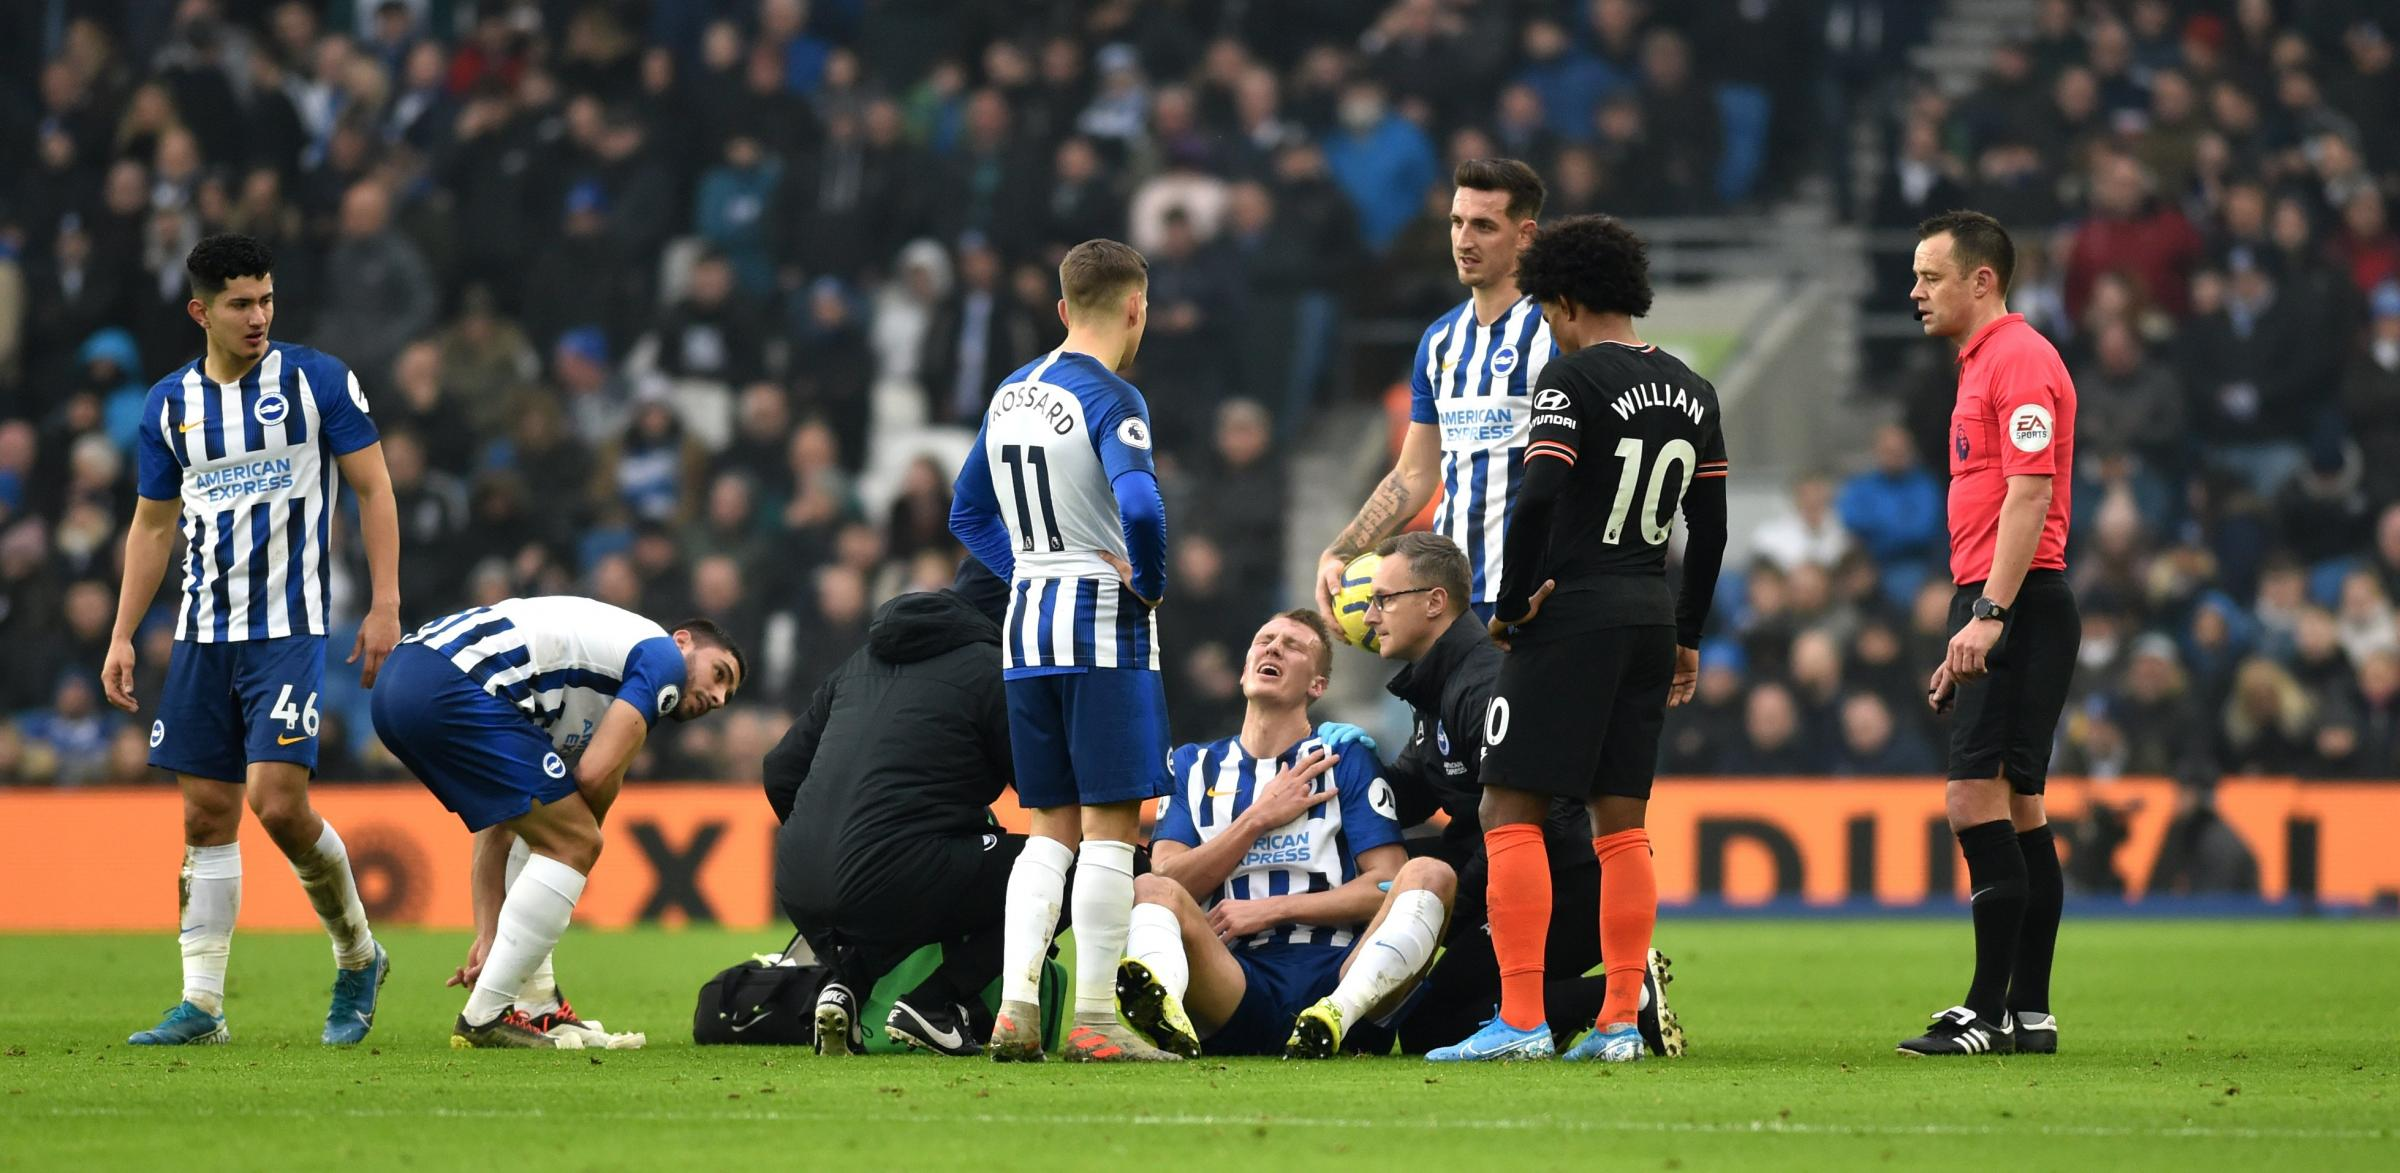 Albion give an update on Dan Burn's recovery from injury